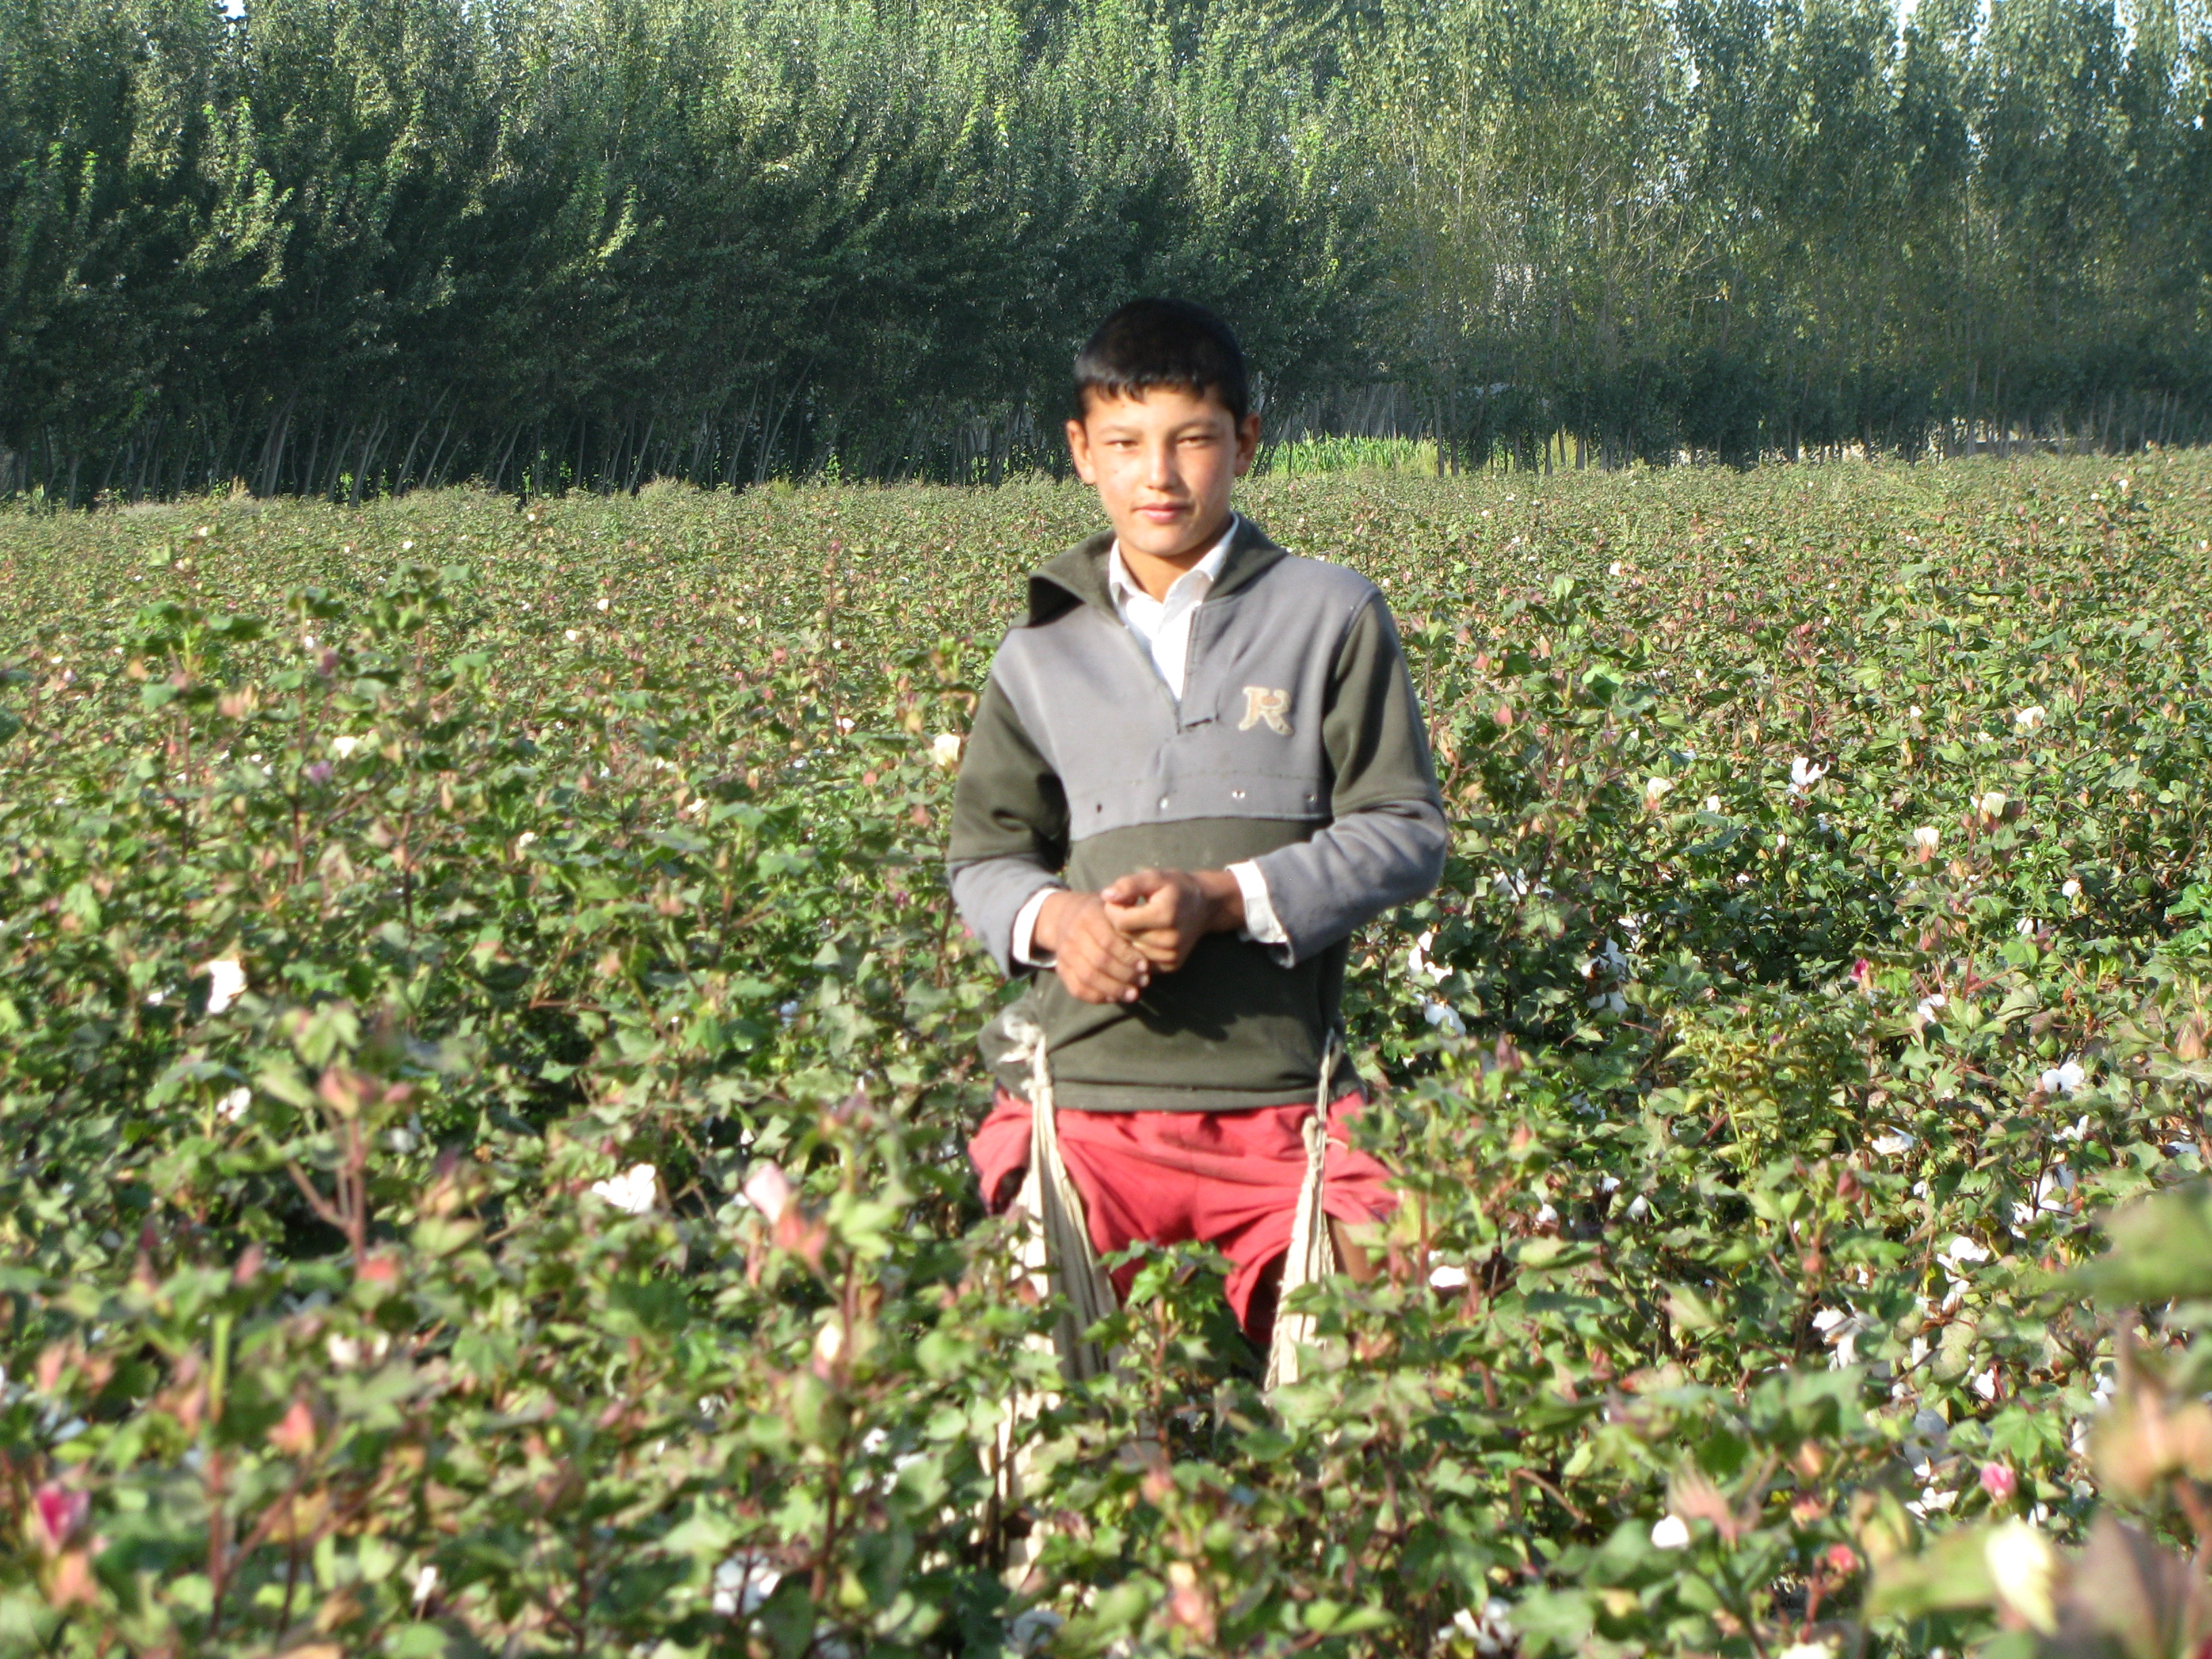 NGO accuses cotton dealer of profiting from forced child labor